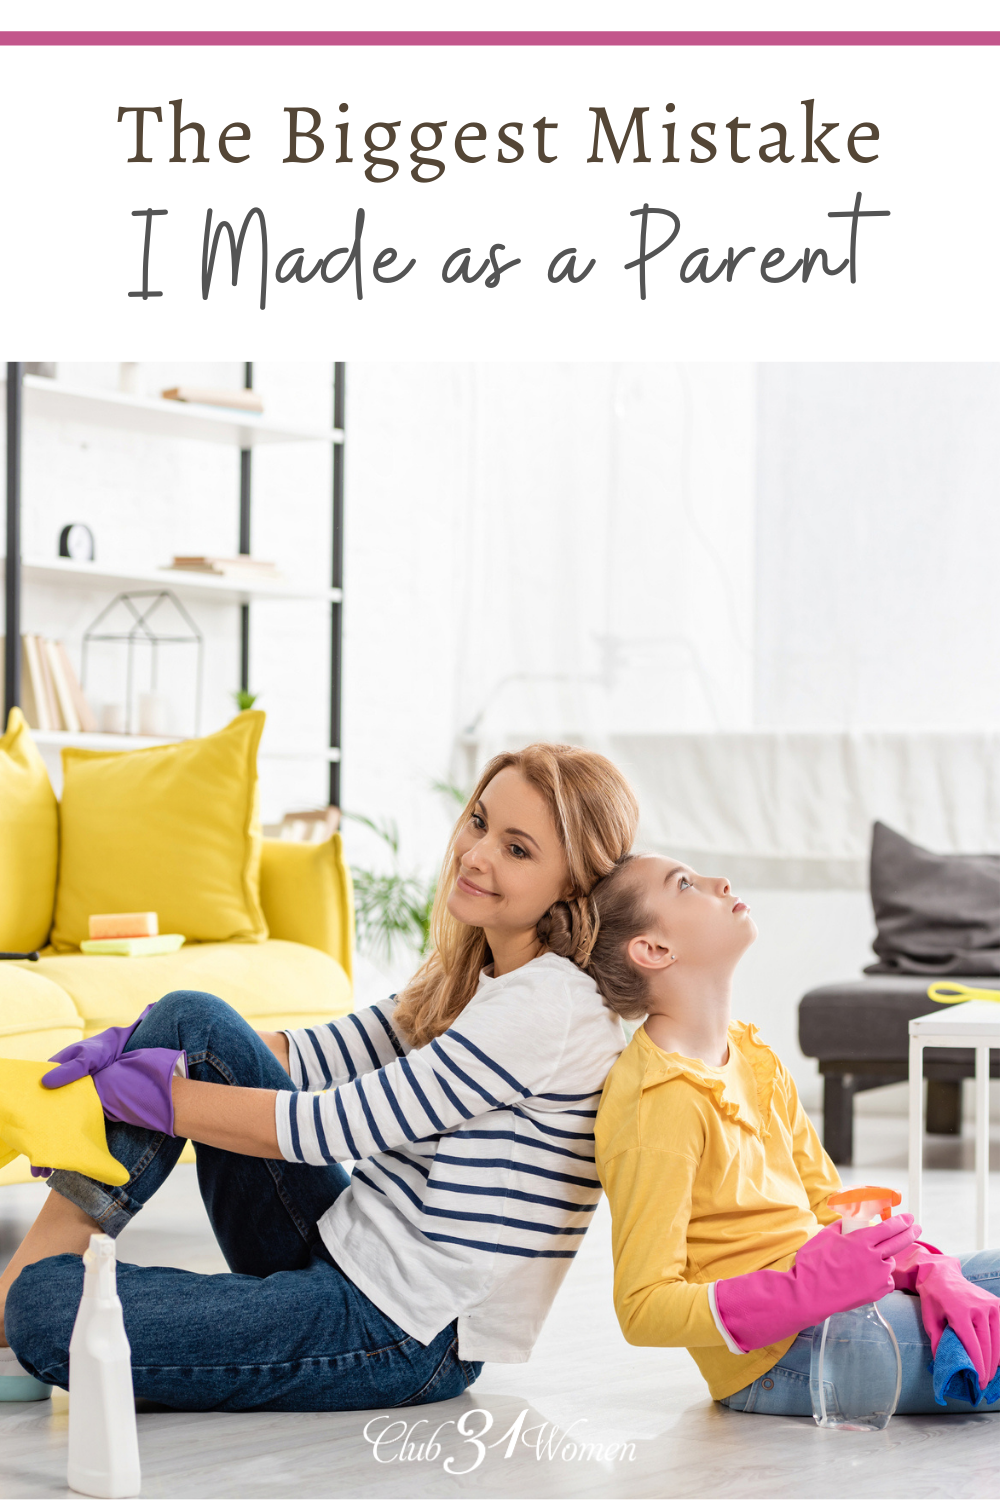 We all make mistakes as a parent. This is a common mistake we make but is easily fixed once we recognize it. via @Club31Women